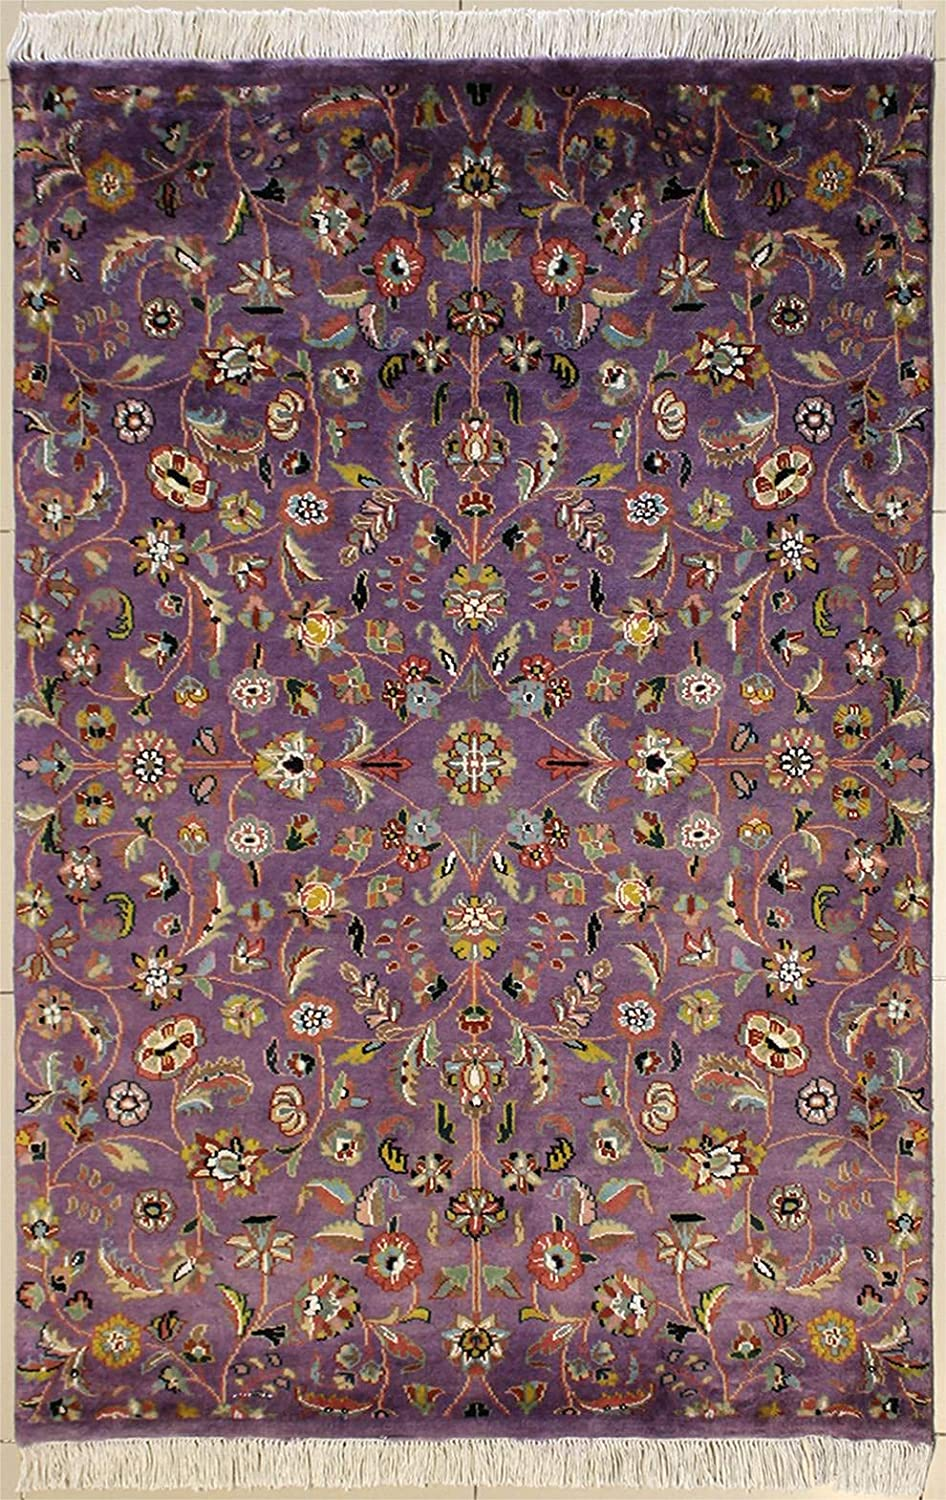 RugsTC 4'0 x 6'0 Pak Persian Area Rug with Silk & Wool Pile - Floral Design | 100% Original Hand-Knotted in Purple,Reddish Brown,Beige Colors | a 4x6 Rectangular Rug